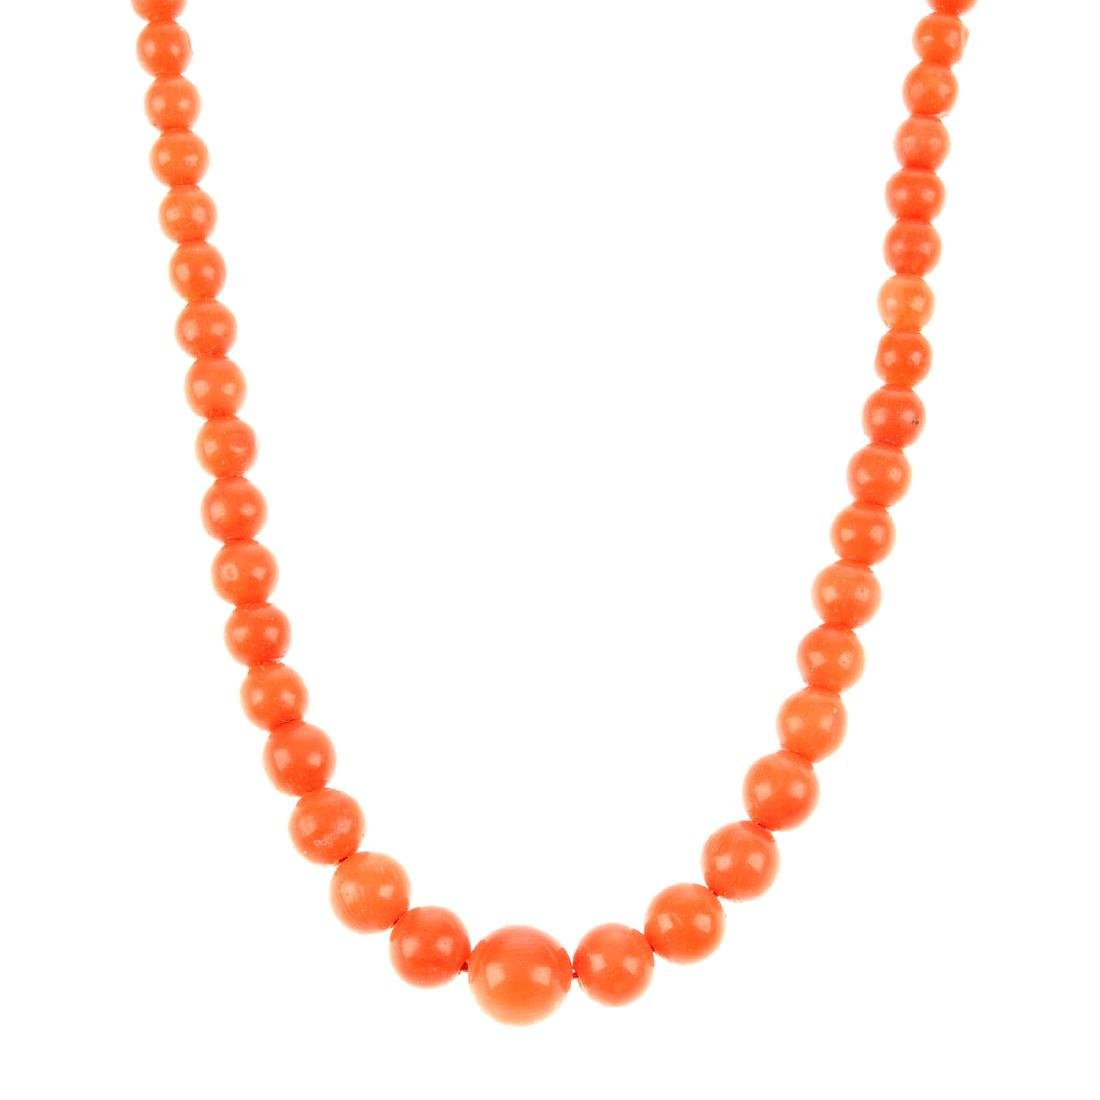 A coral necklace with 18ct gold clasp. The single row